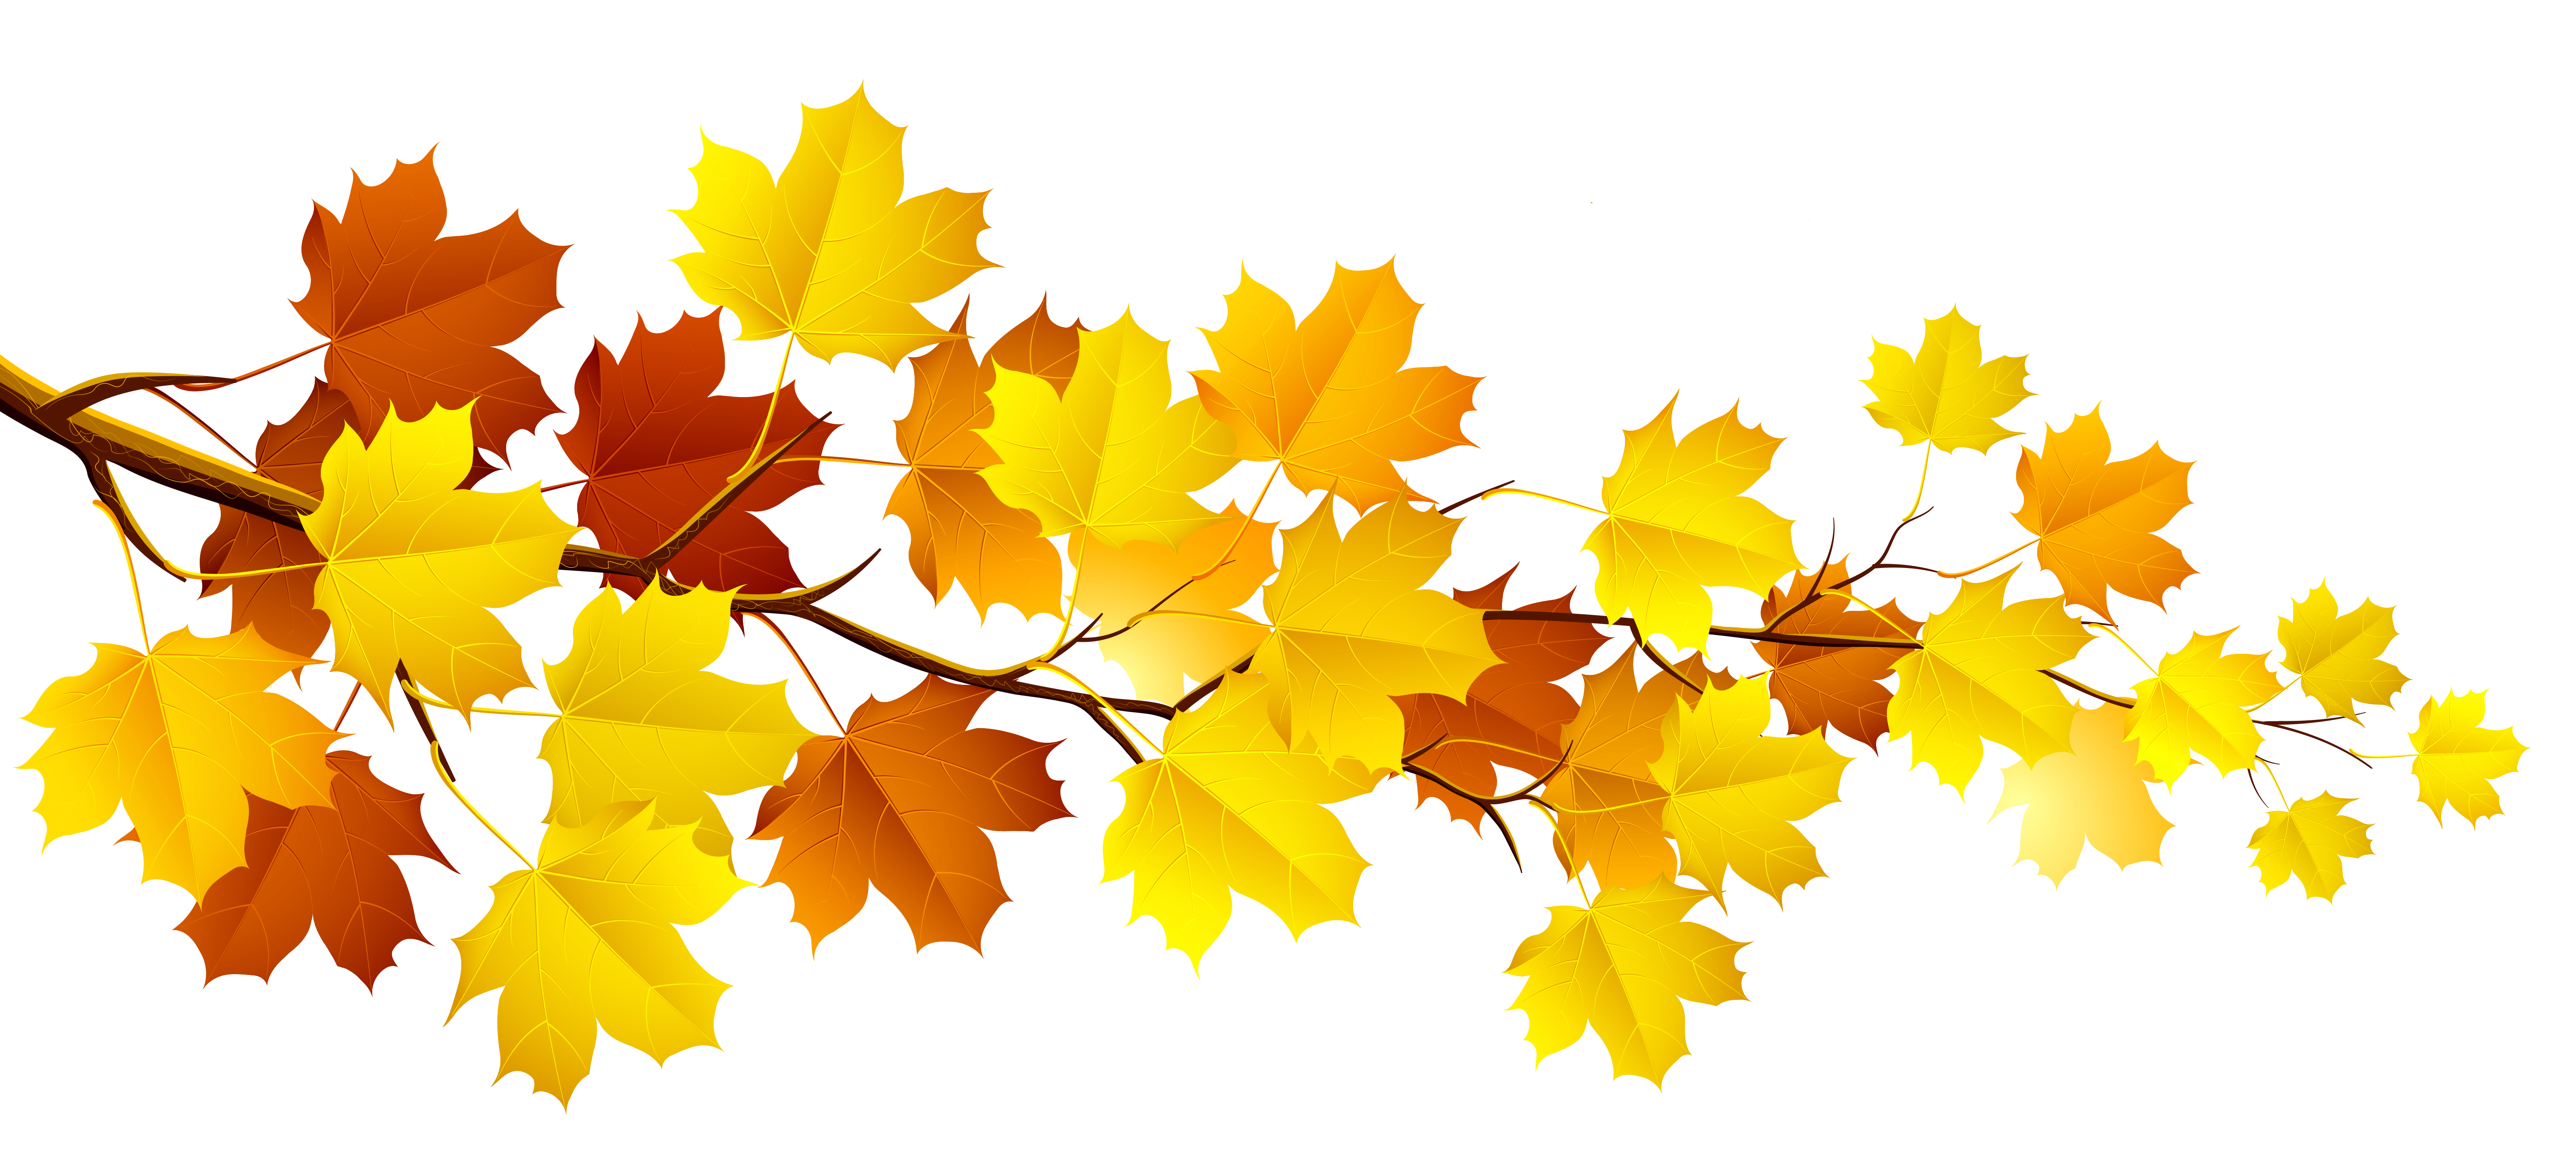 Fall leaves fall clip art aut - Free Clip Art Fall Leaves